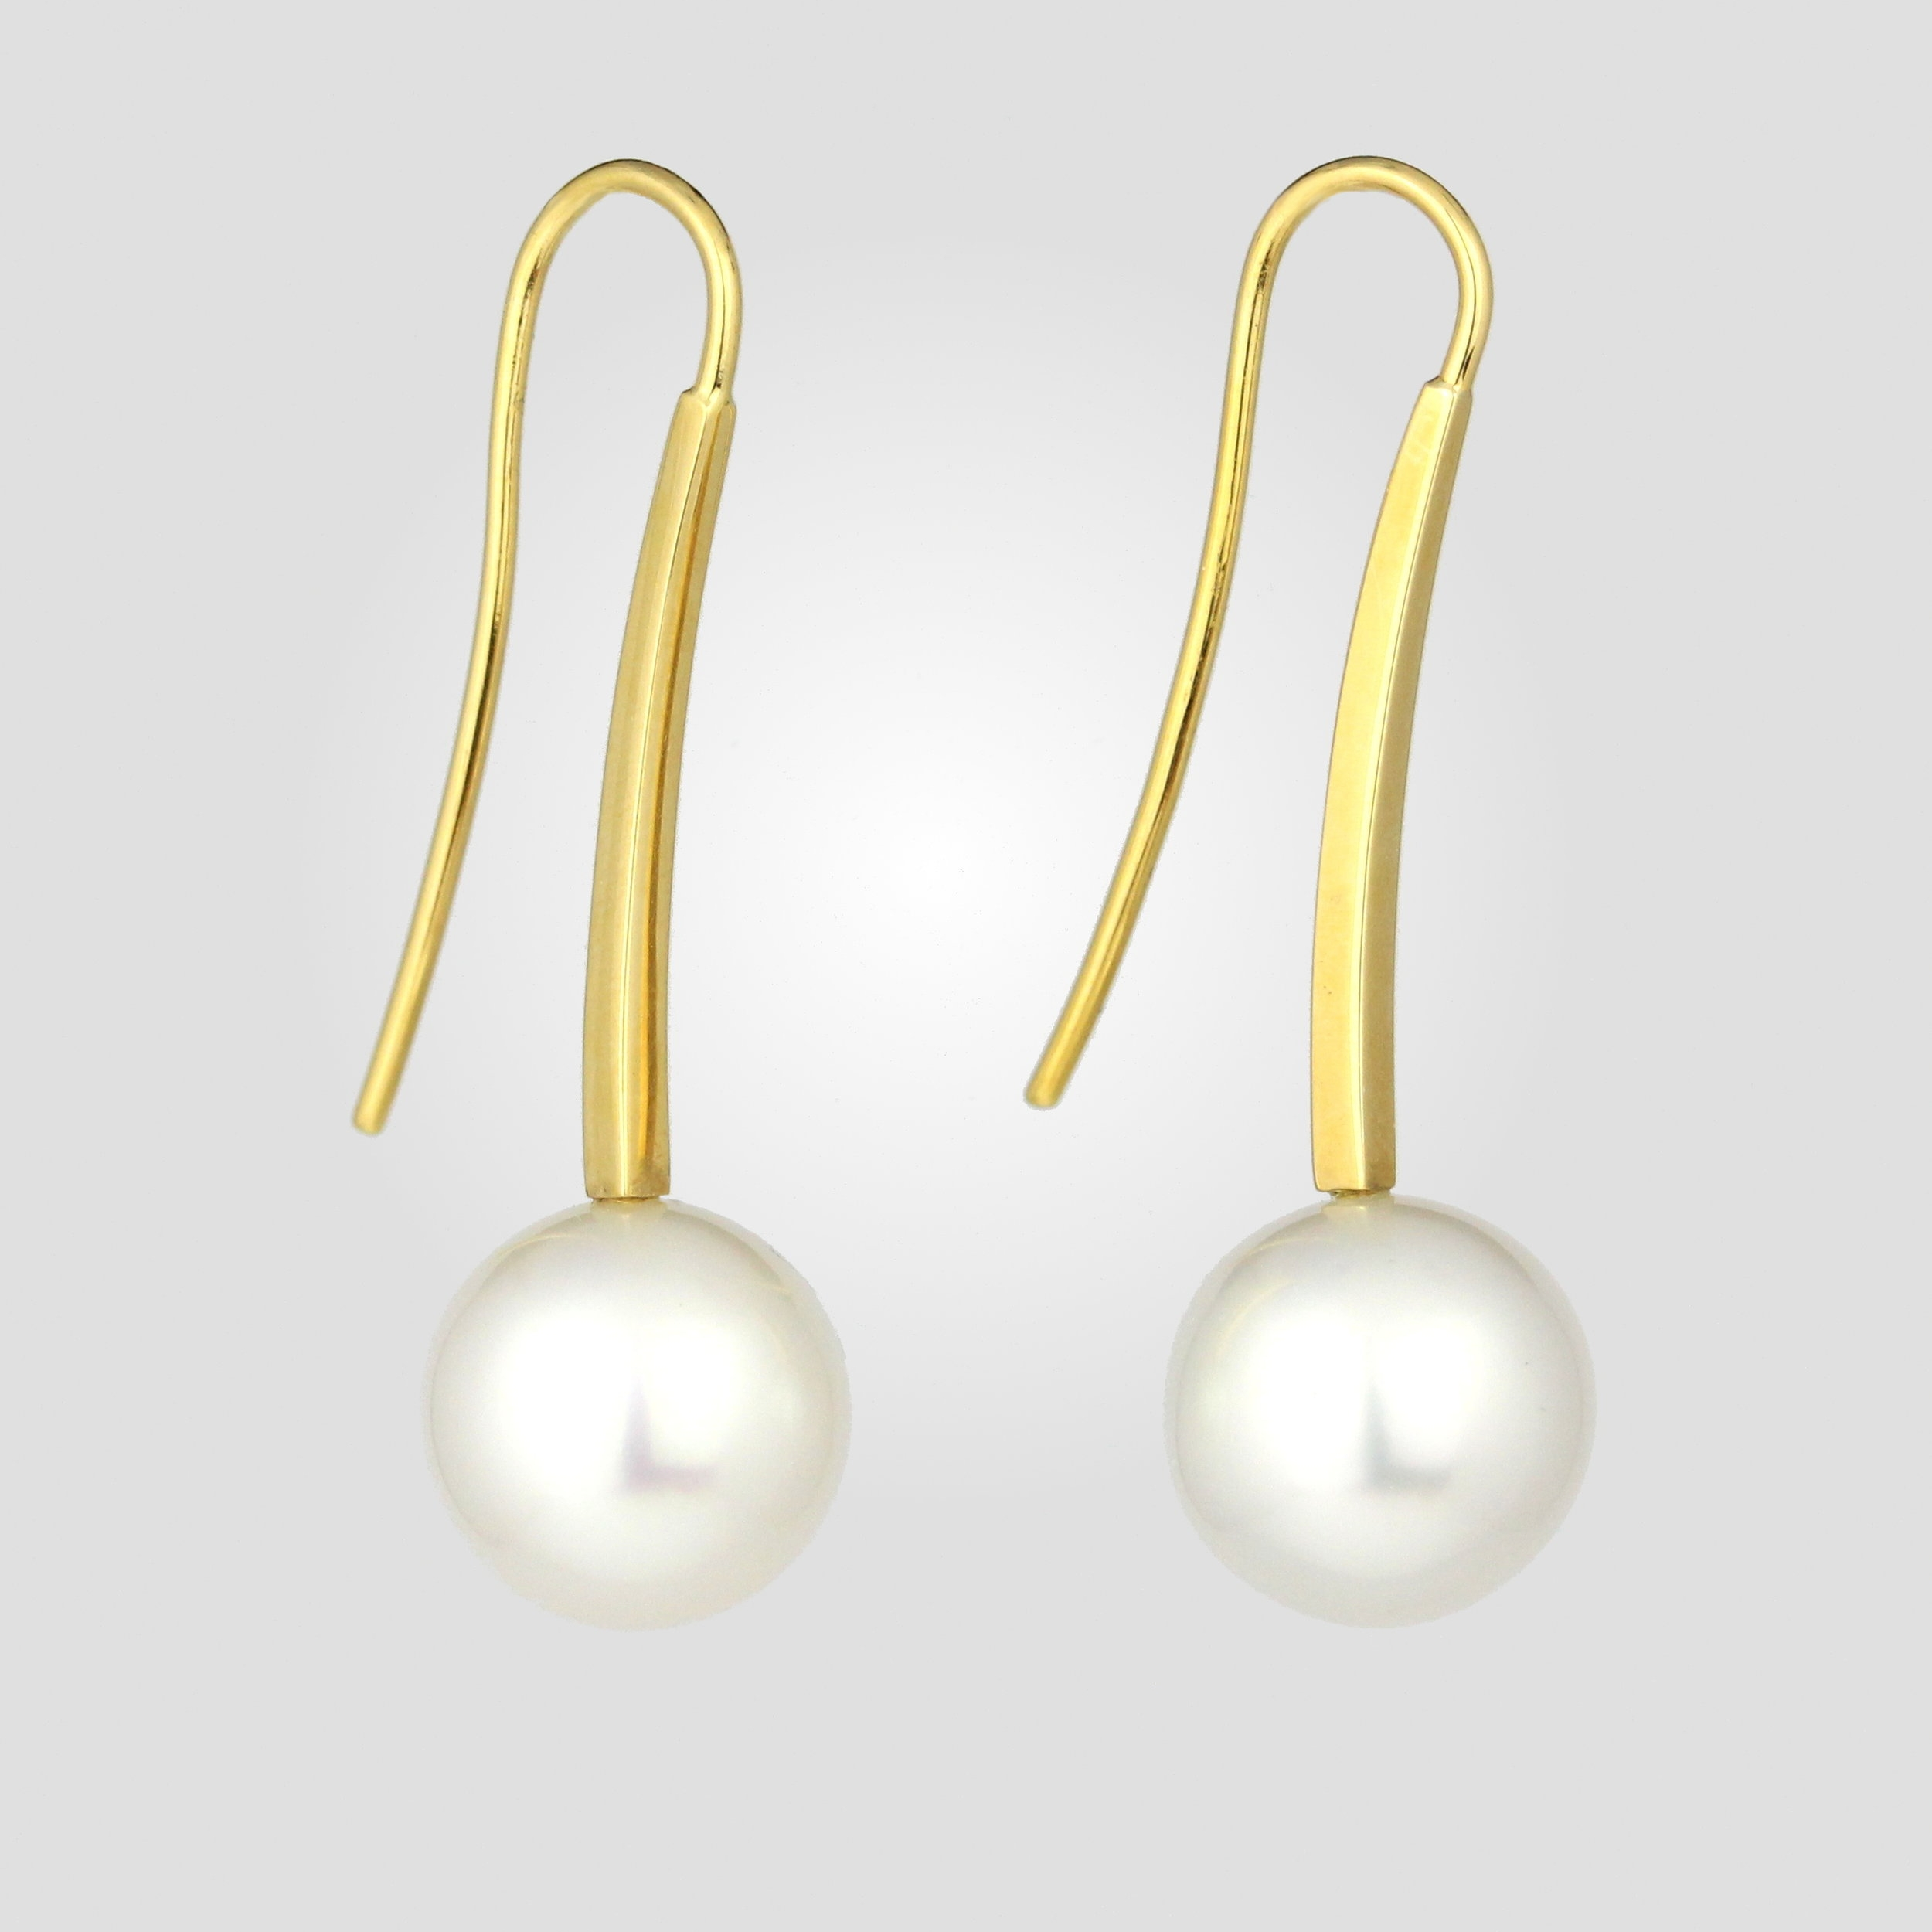 Broome pearls with long square shepherd hooks in yellow gold.